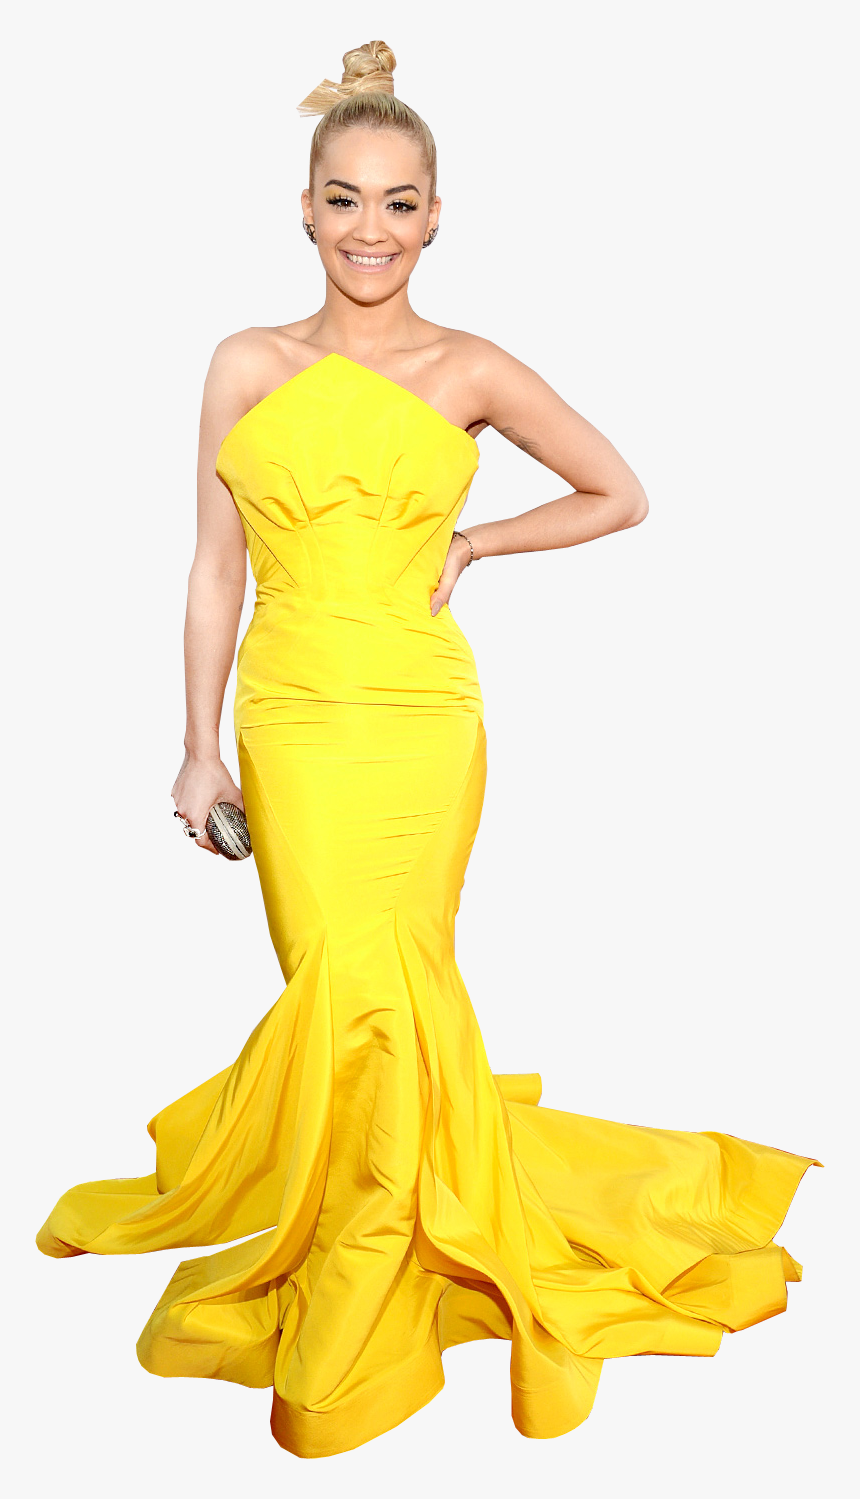 Rita Ora Transparent Background Png Image - Gown, Png Download, Free Download